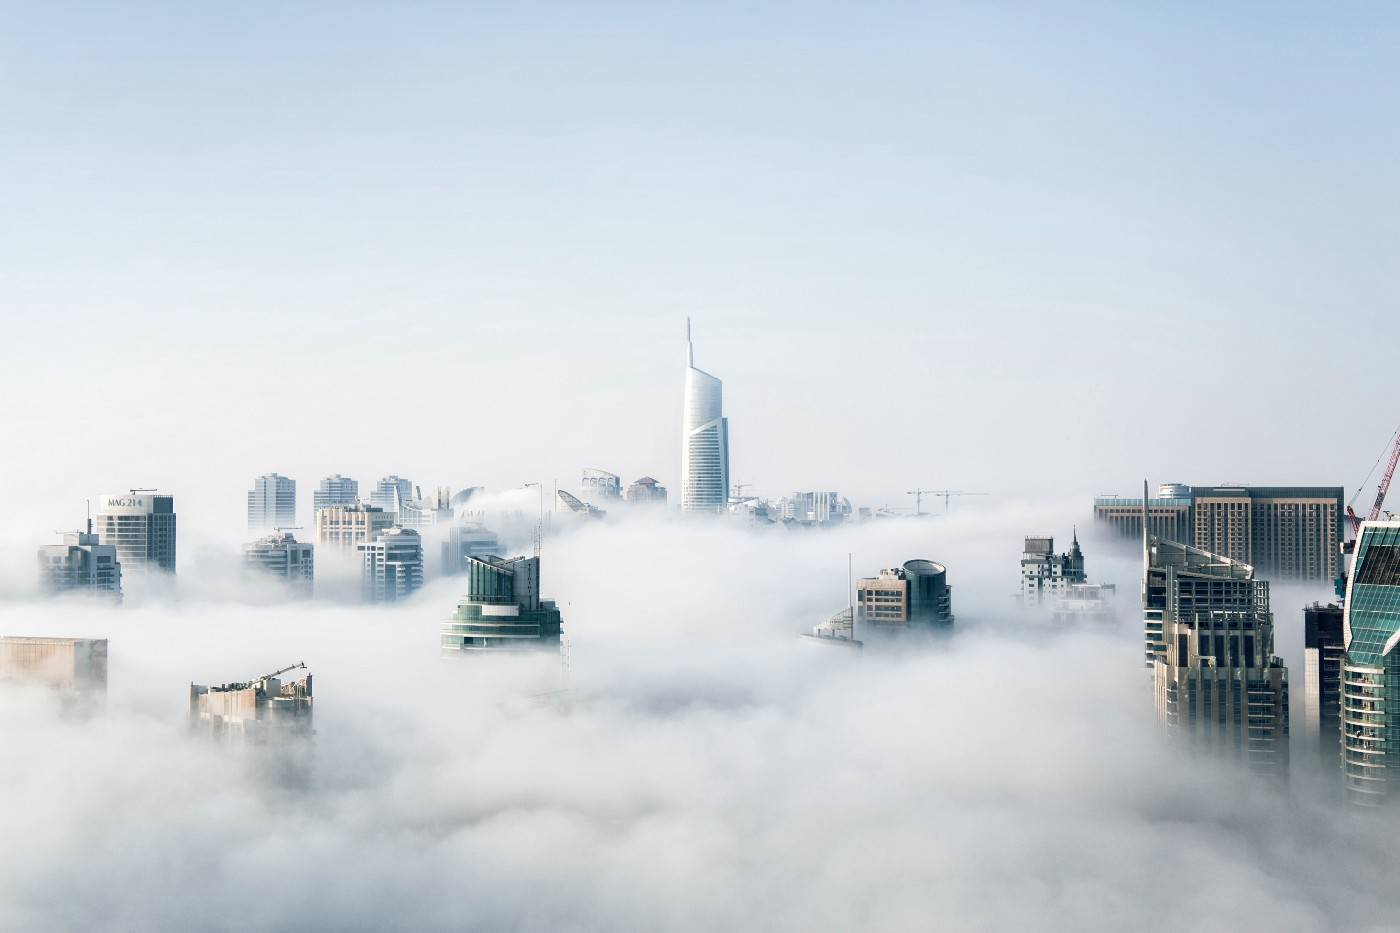 A cityscape viewed from above the clouds.